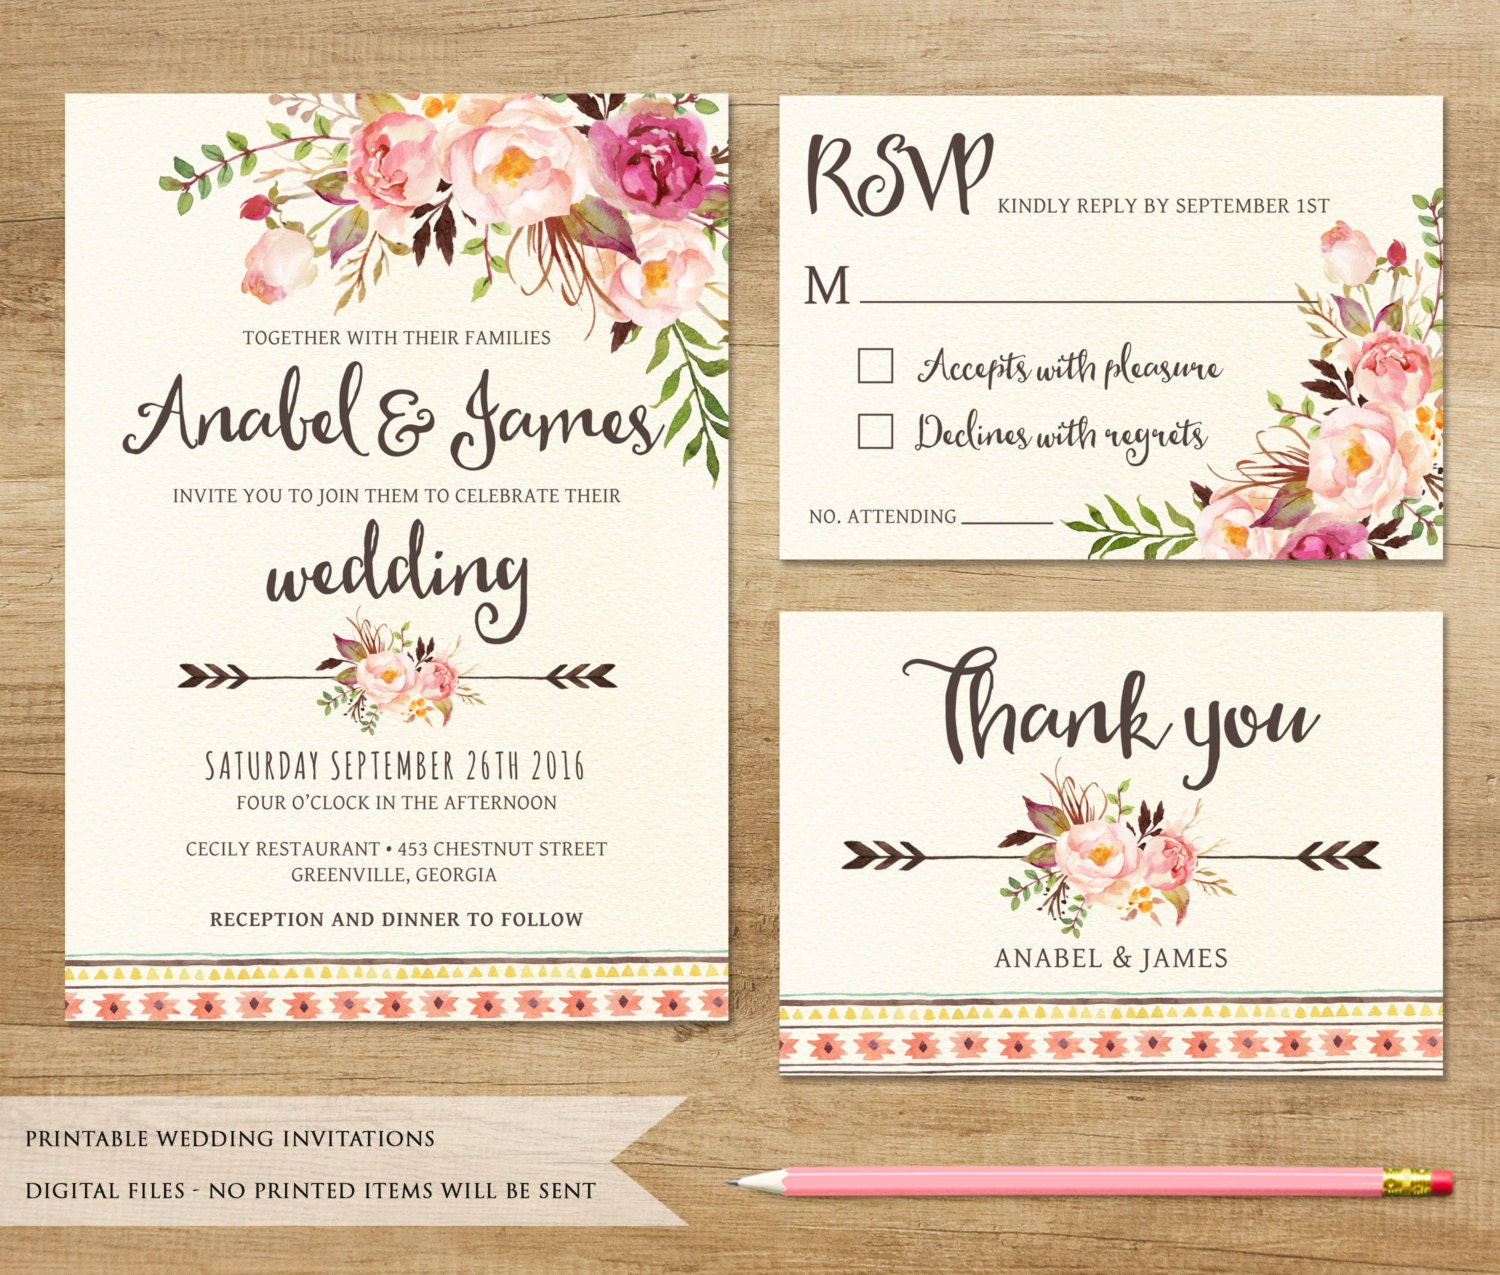 floral wedding invitation  printable wedding invitation